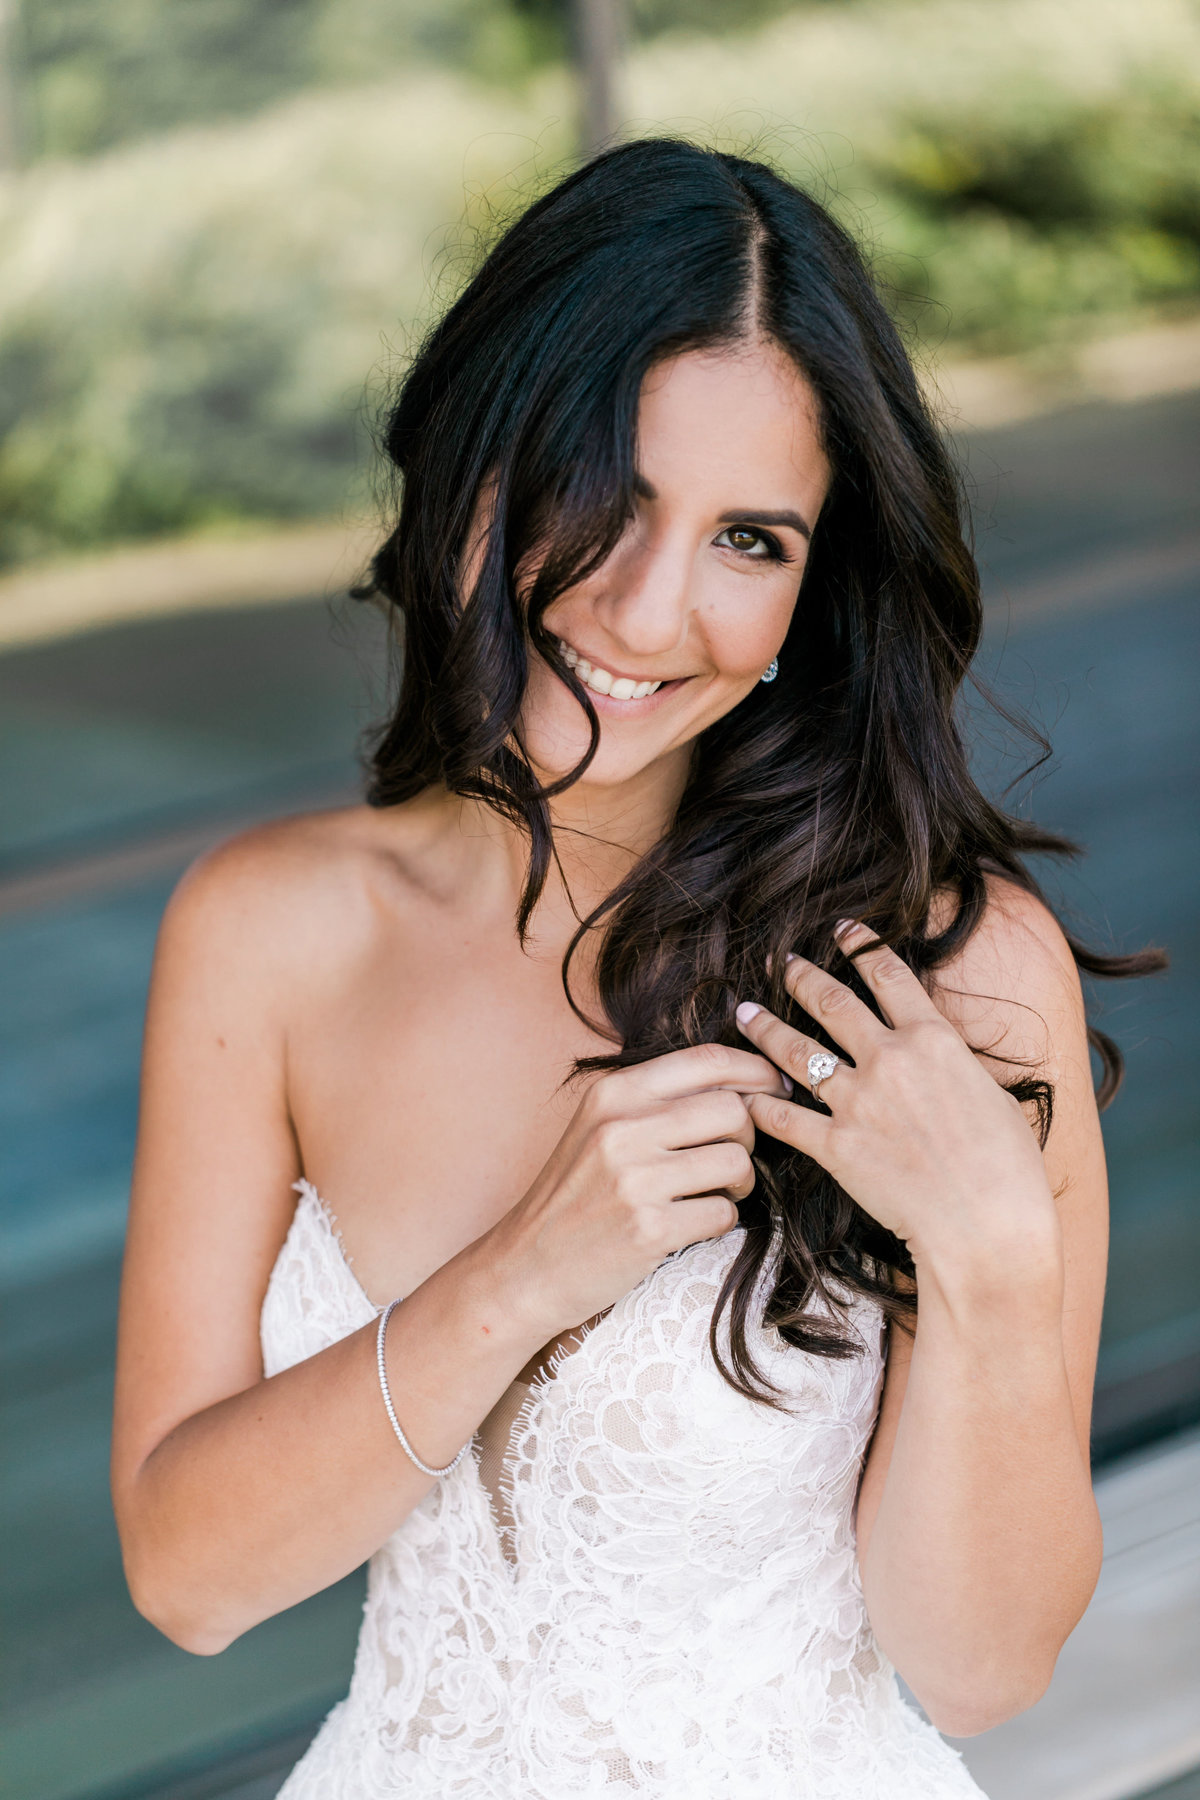 Malibu Private Estate Wedding_Valorie Darling Photography_ID3A8460